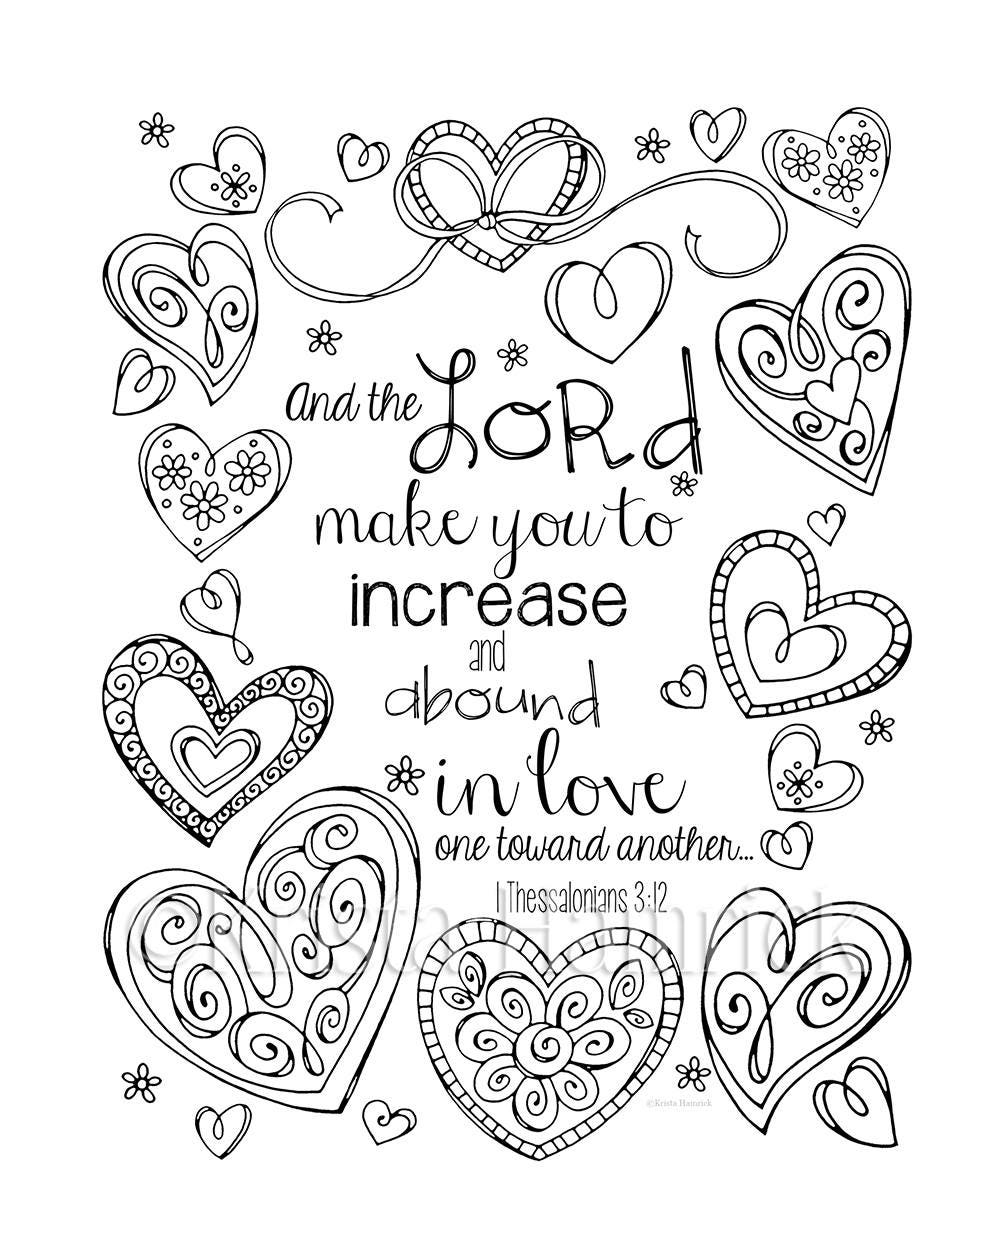 Increase And Abound In Love Coloring Page Two Sizes